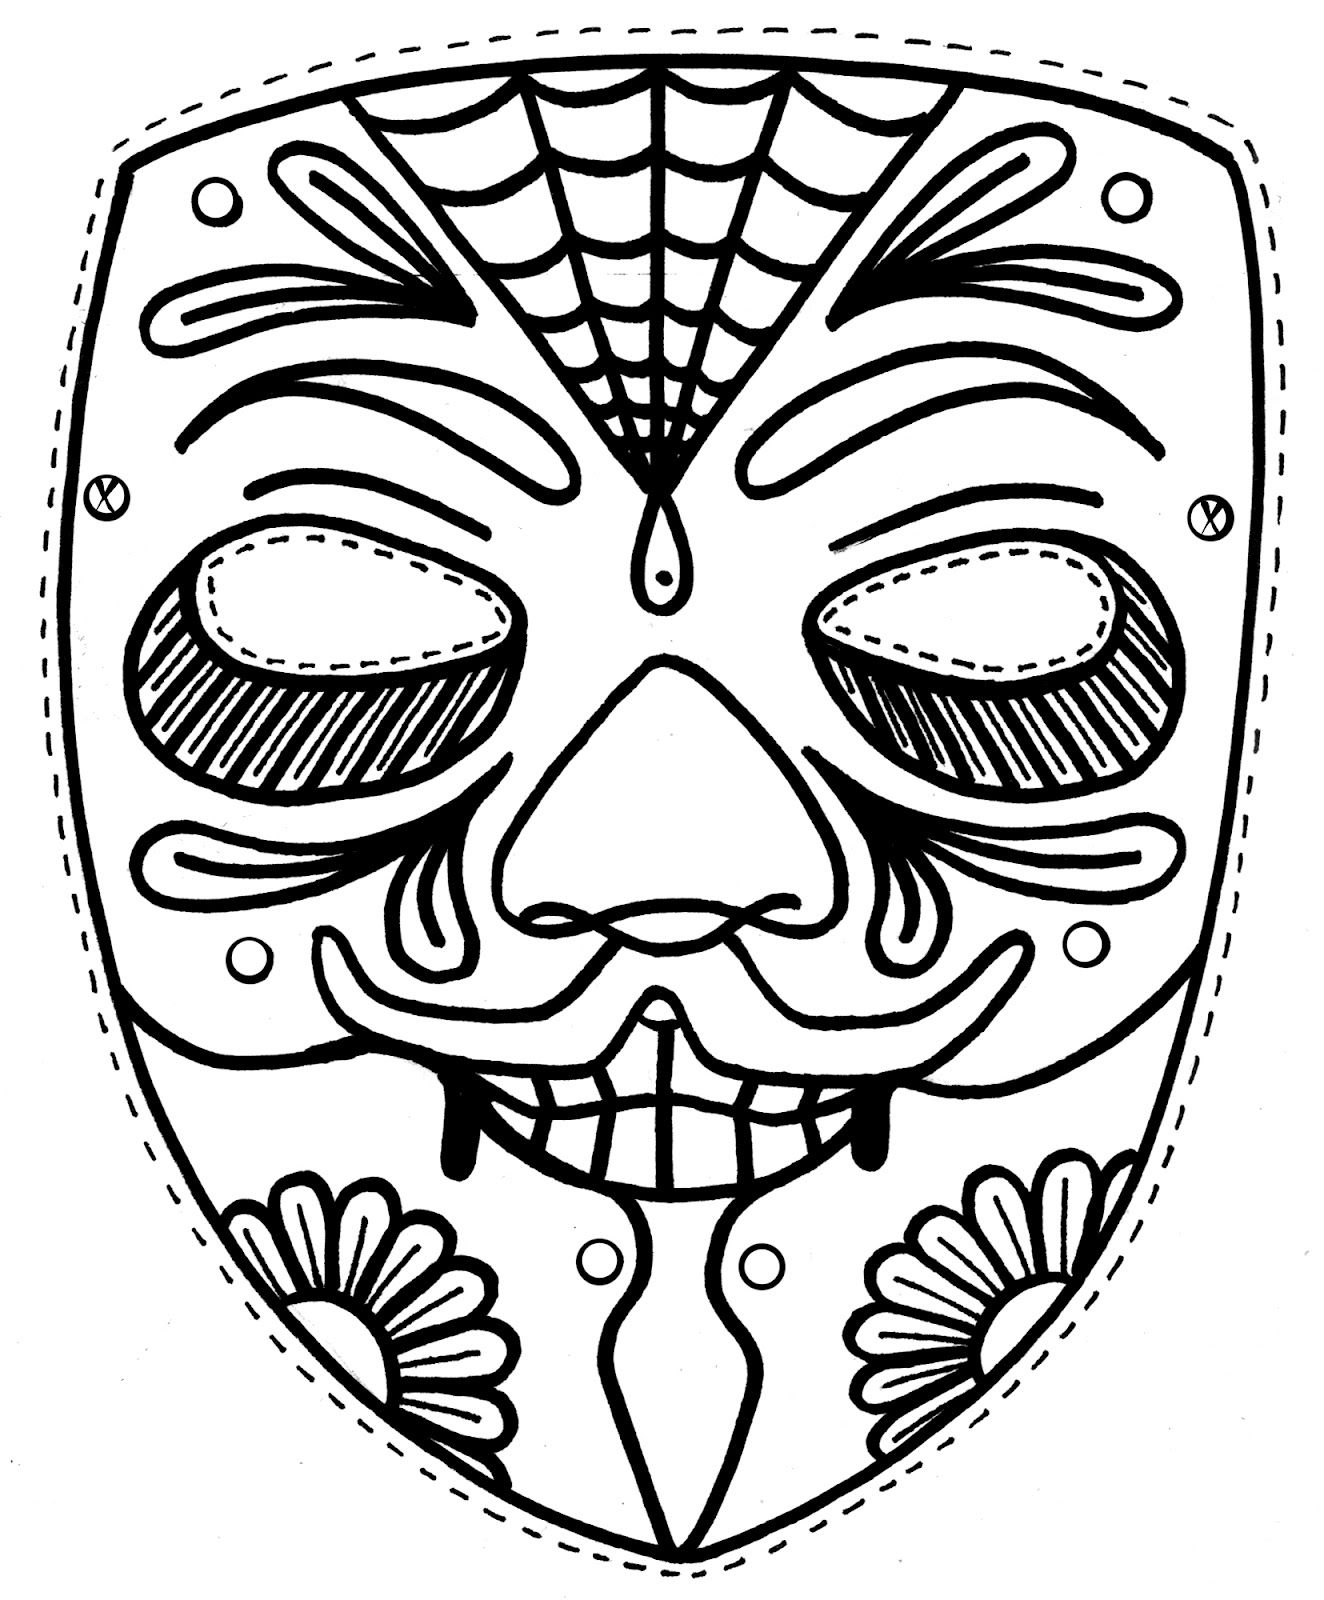 graphic relating to Printable Masks for Kids titled No cost Printable Mask Coloring Internet pages For Children pport